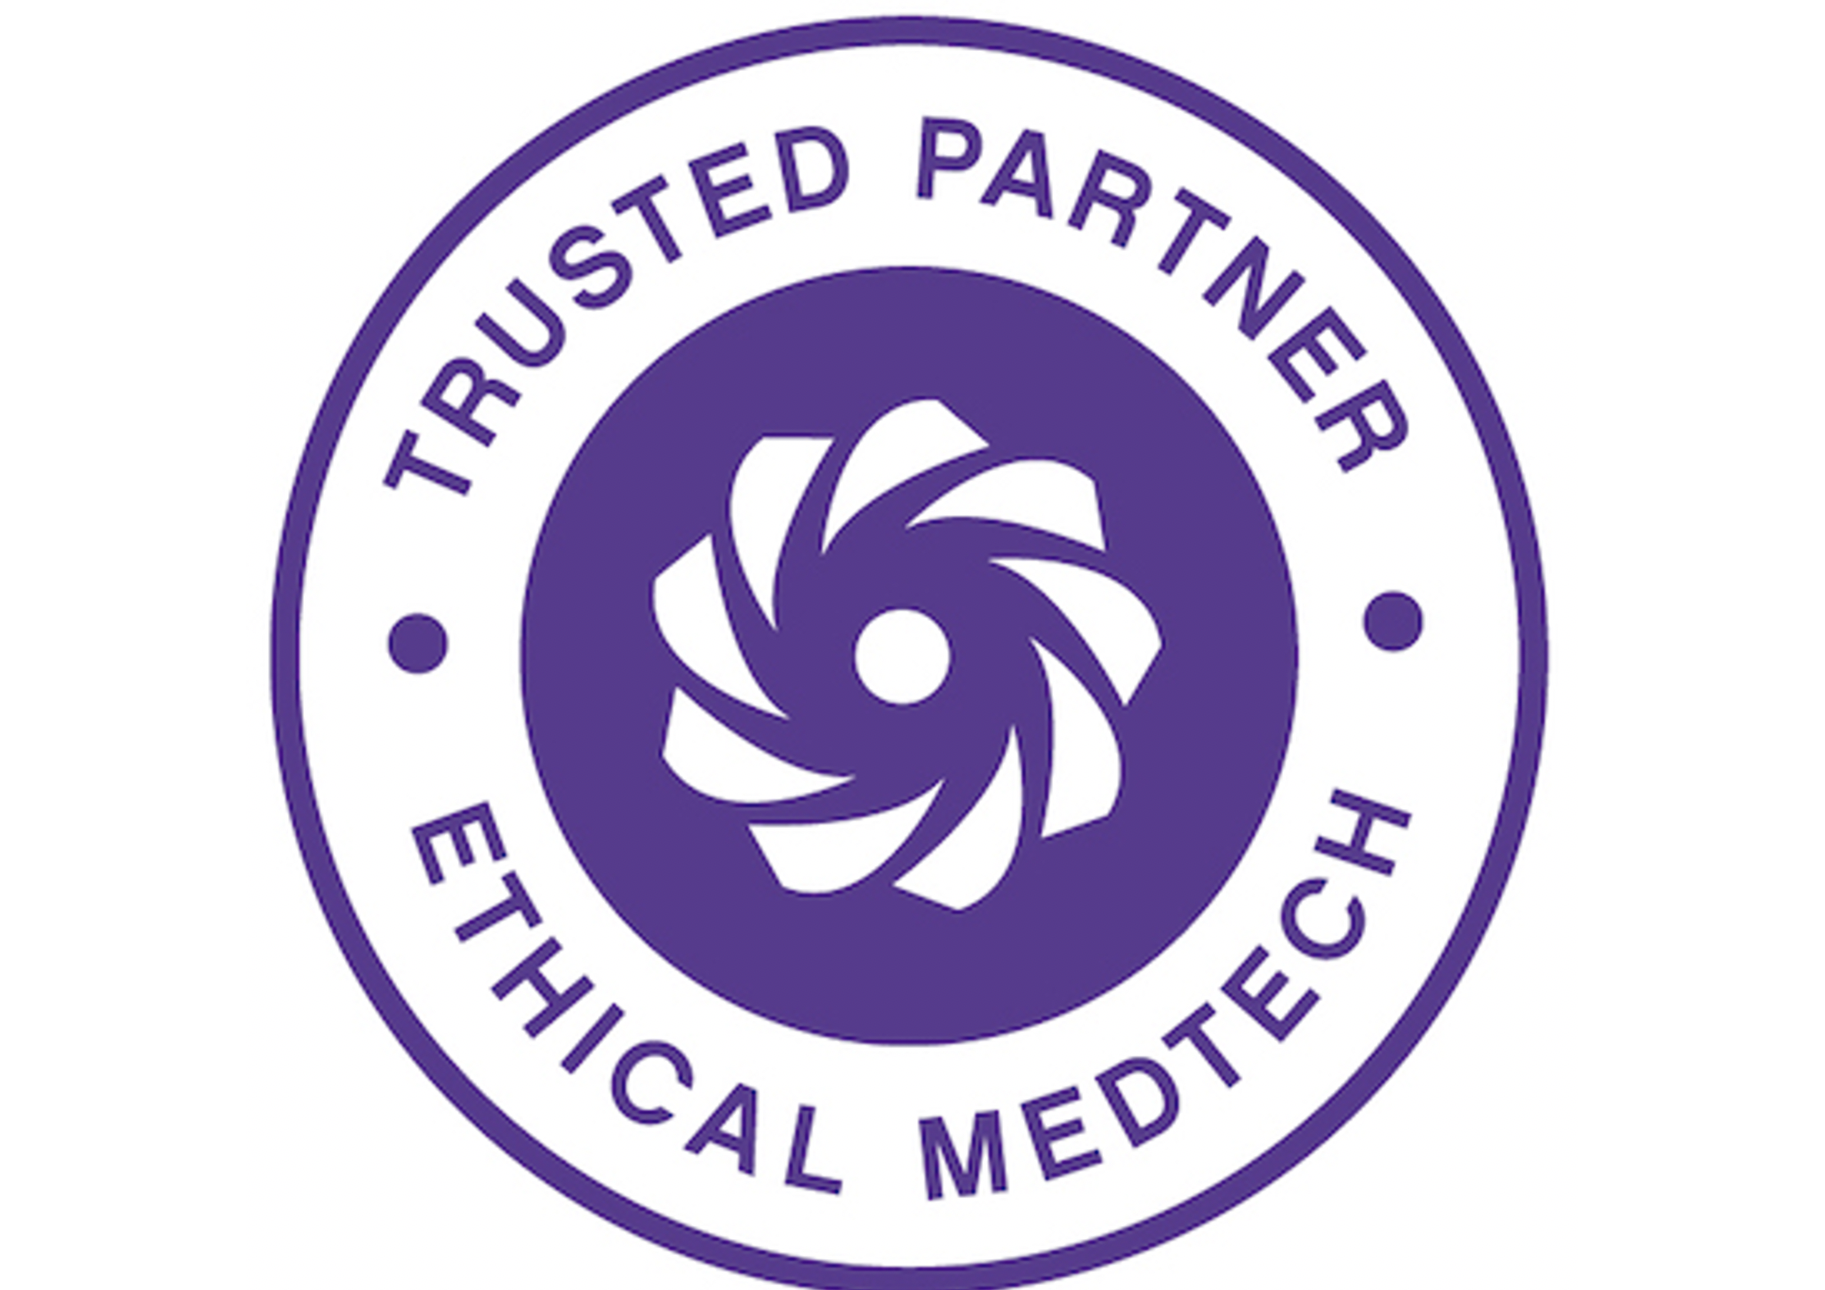 Open Audience awarded trusted partner status by ethical medtech healthcare events medical society clients